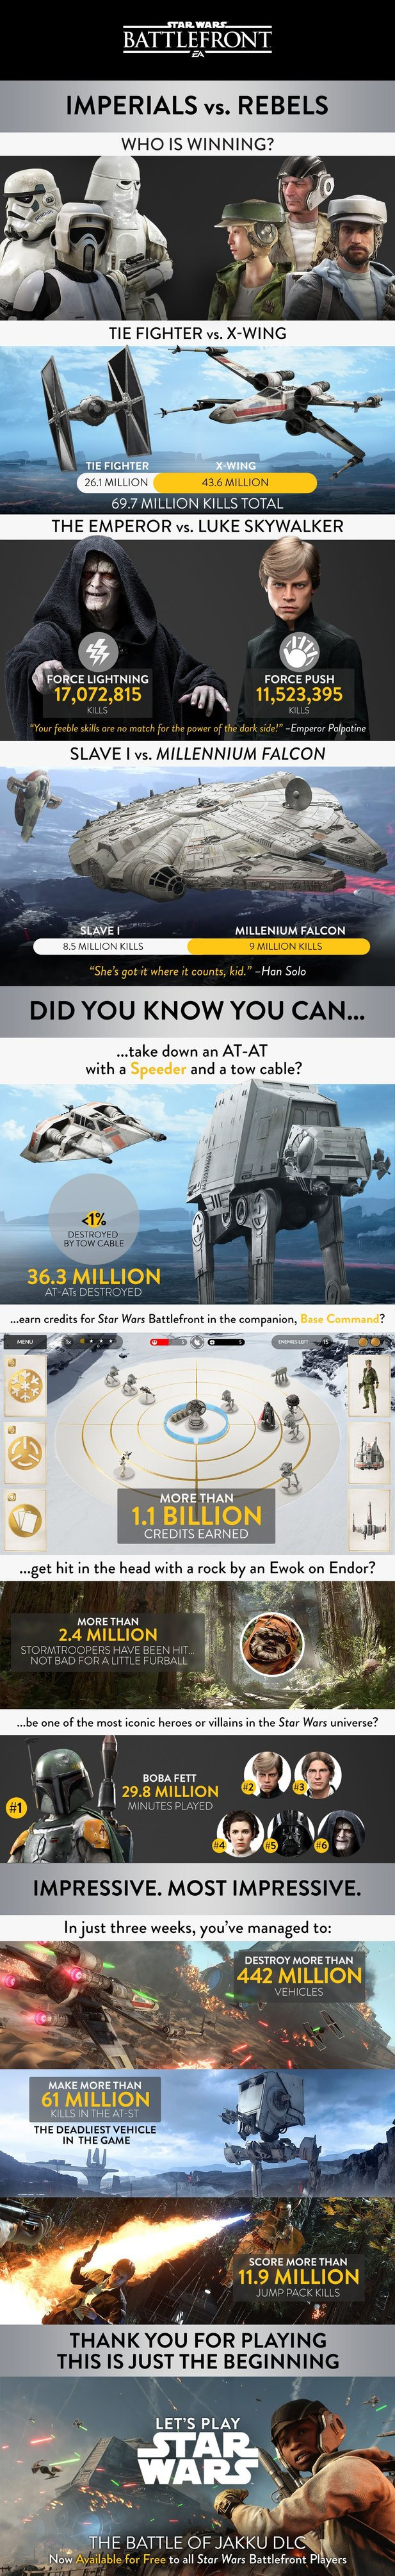 Star Wars: Battlefront Statistik